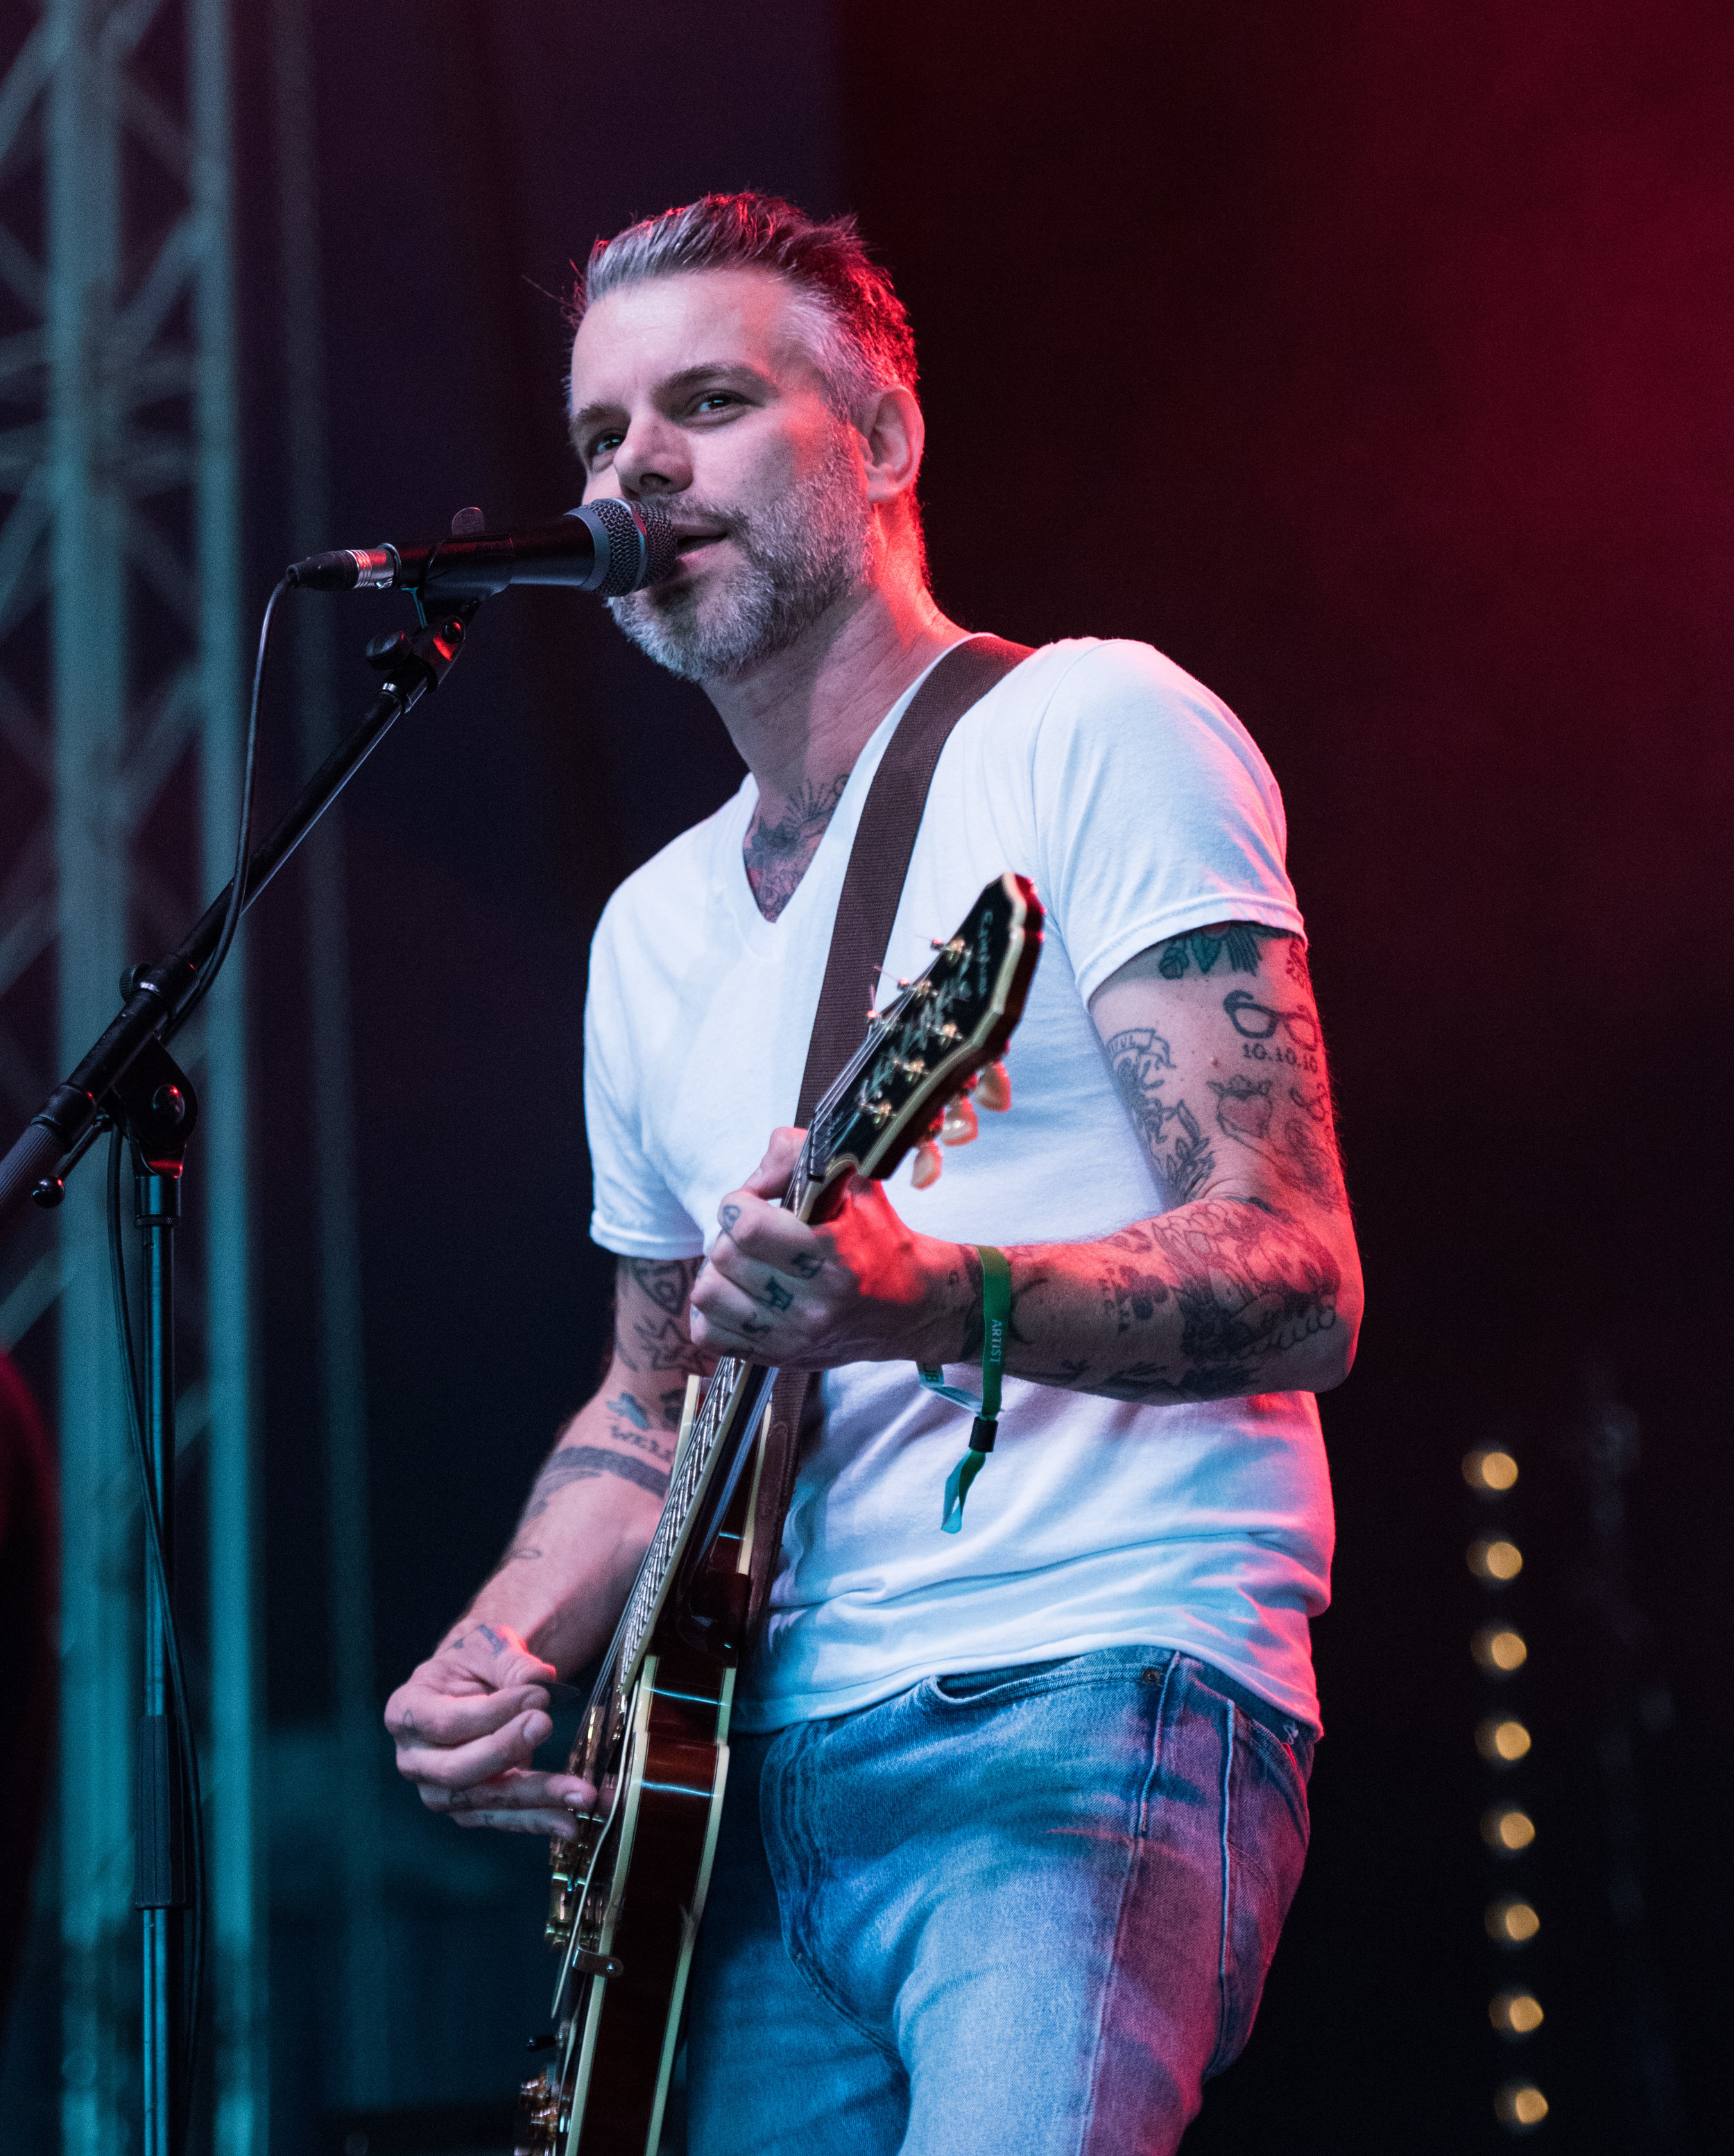 Ben Nichols of Lucero by Simon Green.